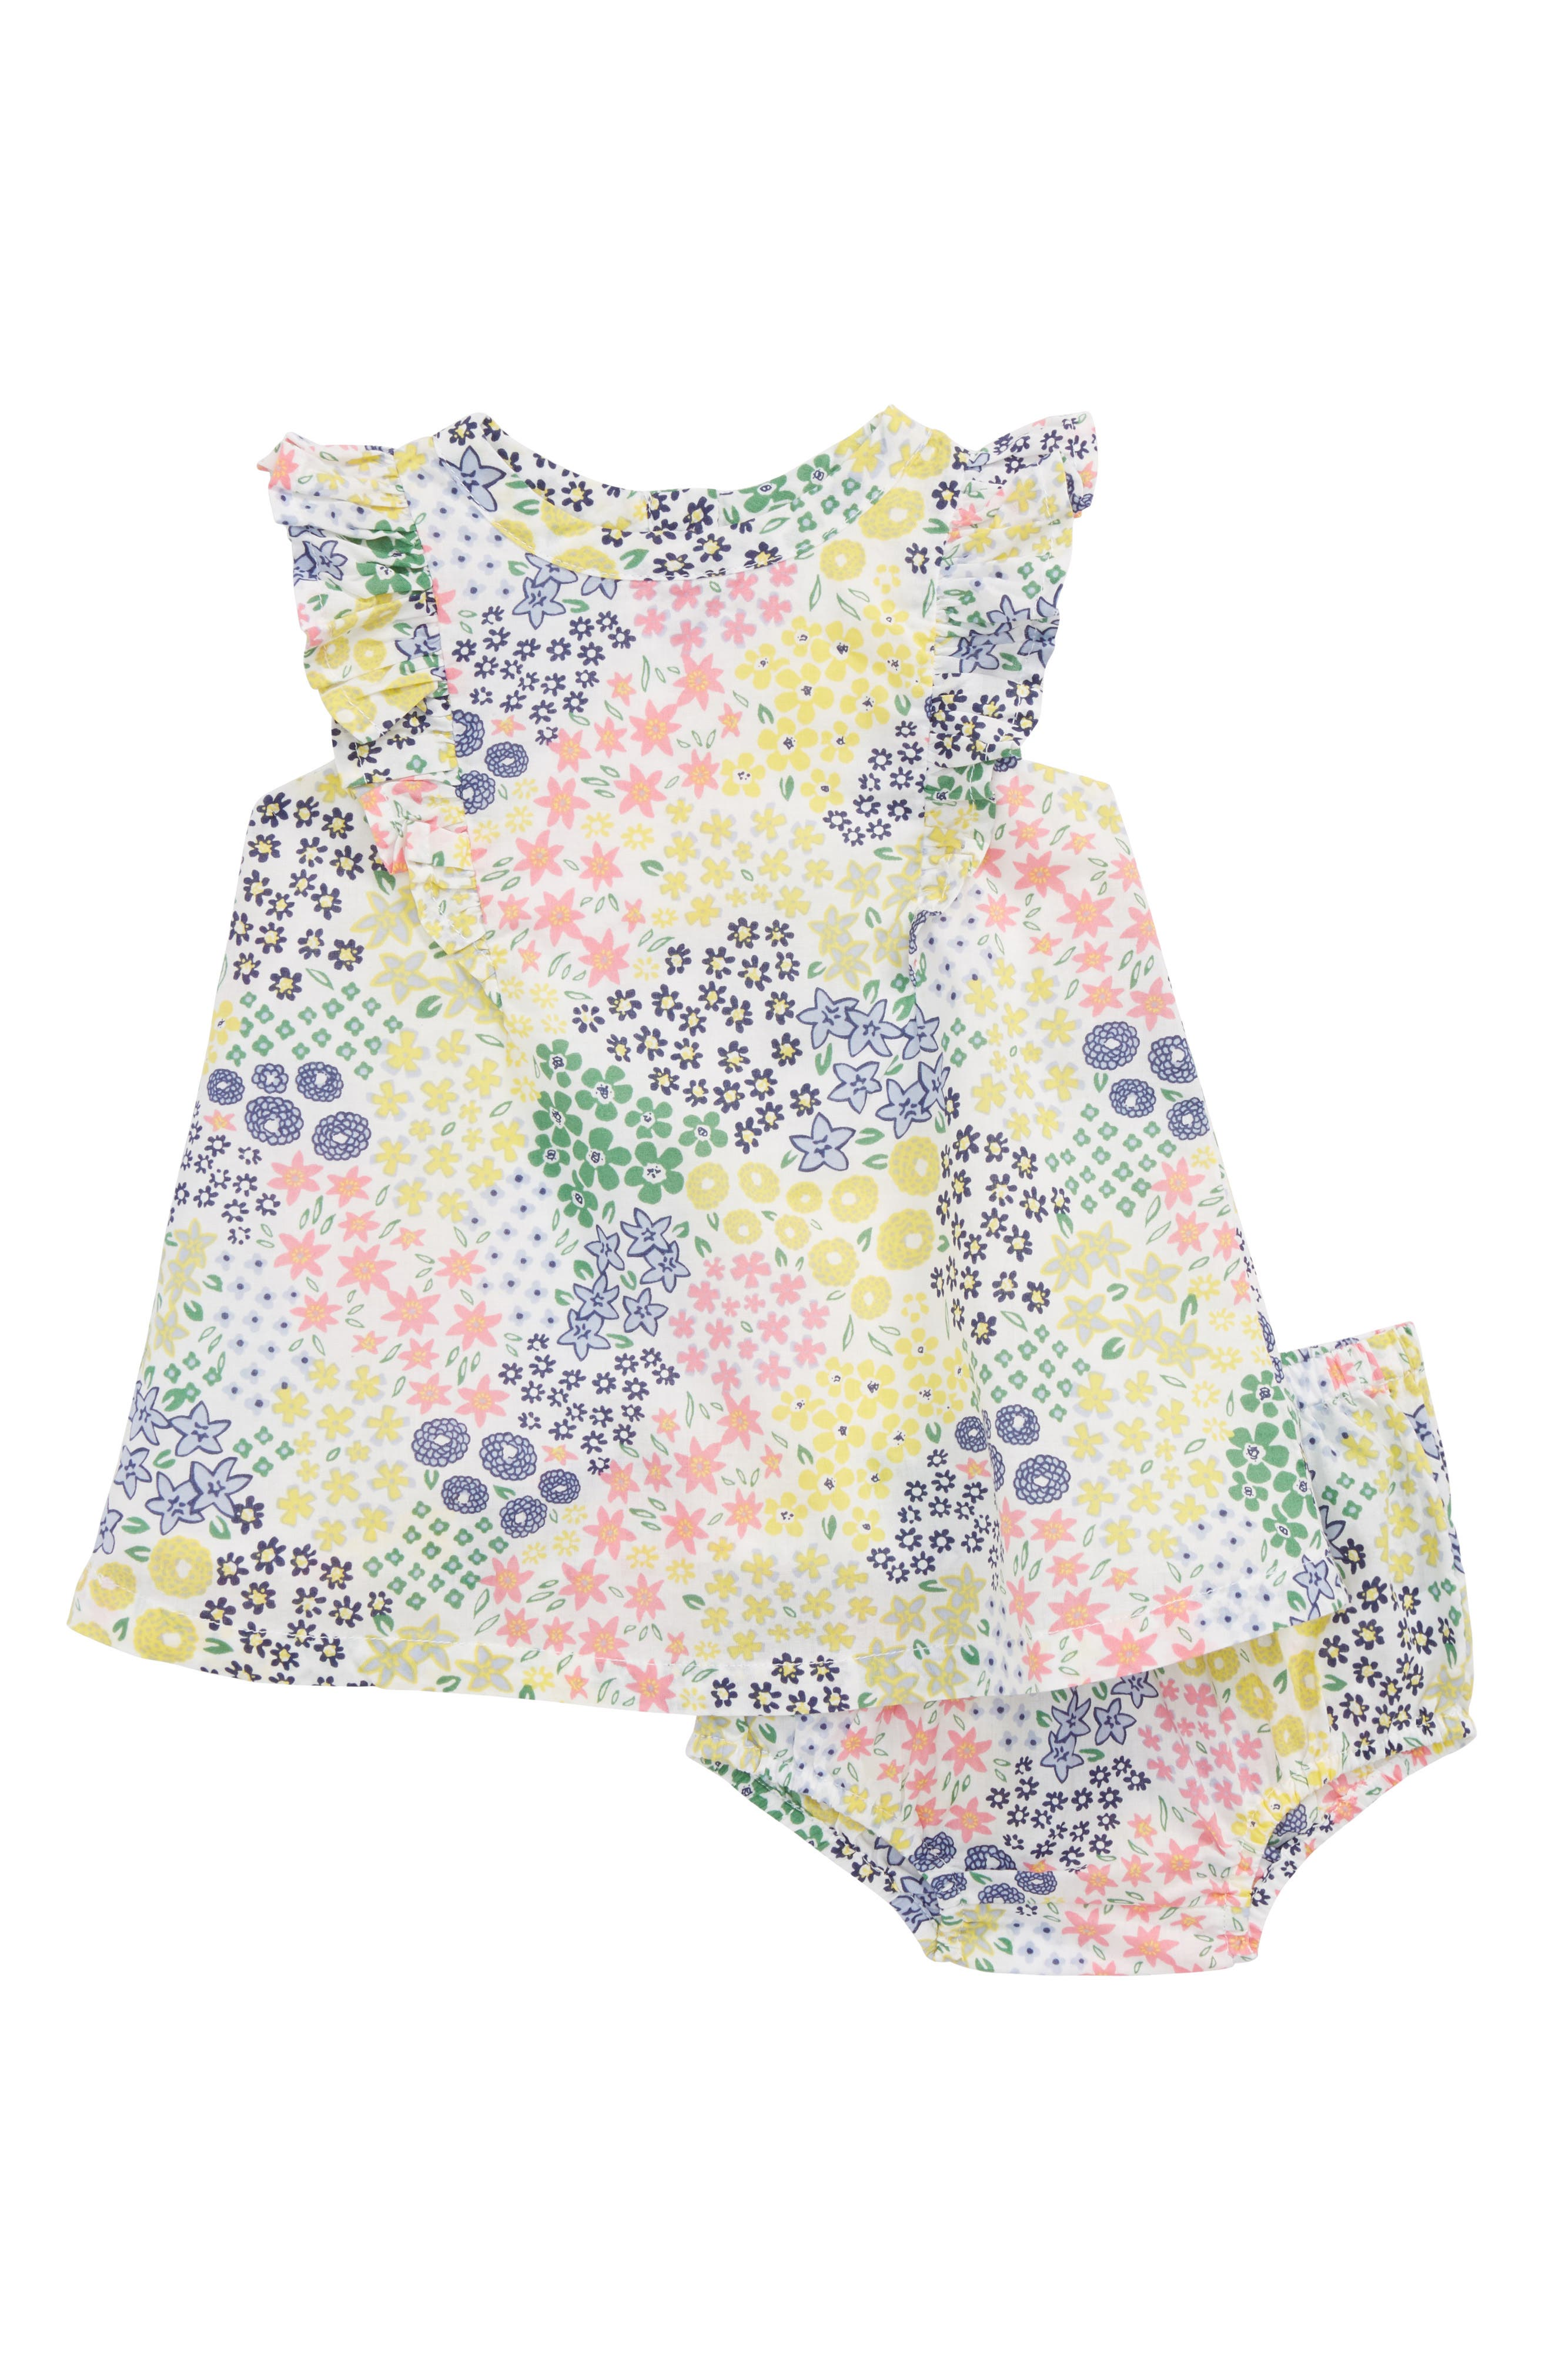 Ruffle Floral Dress,                         Main,                         color, White Multi Meadow